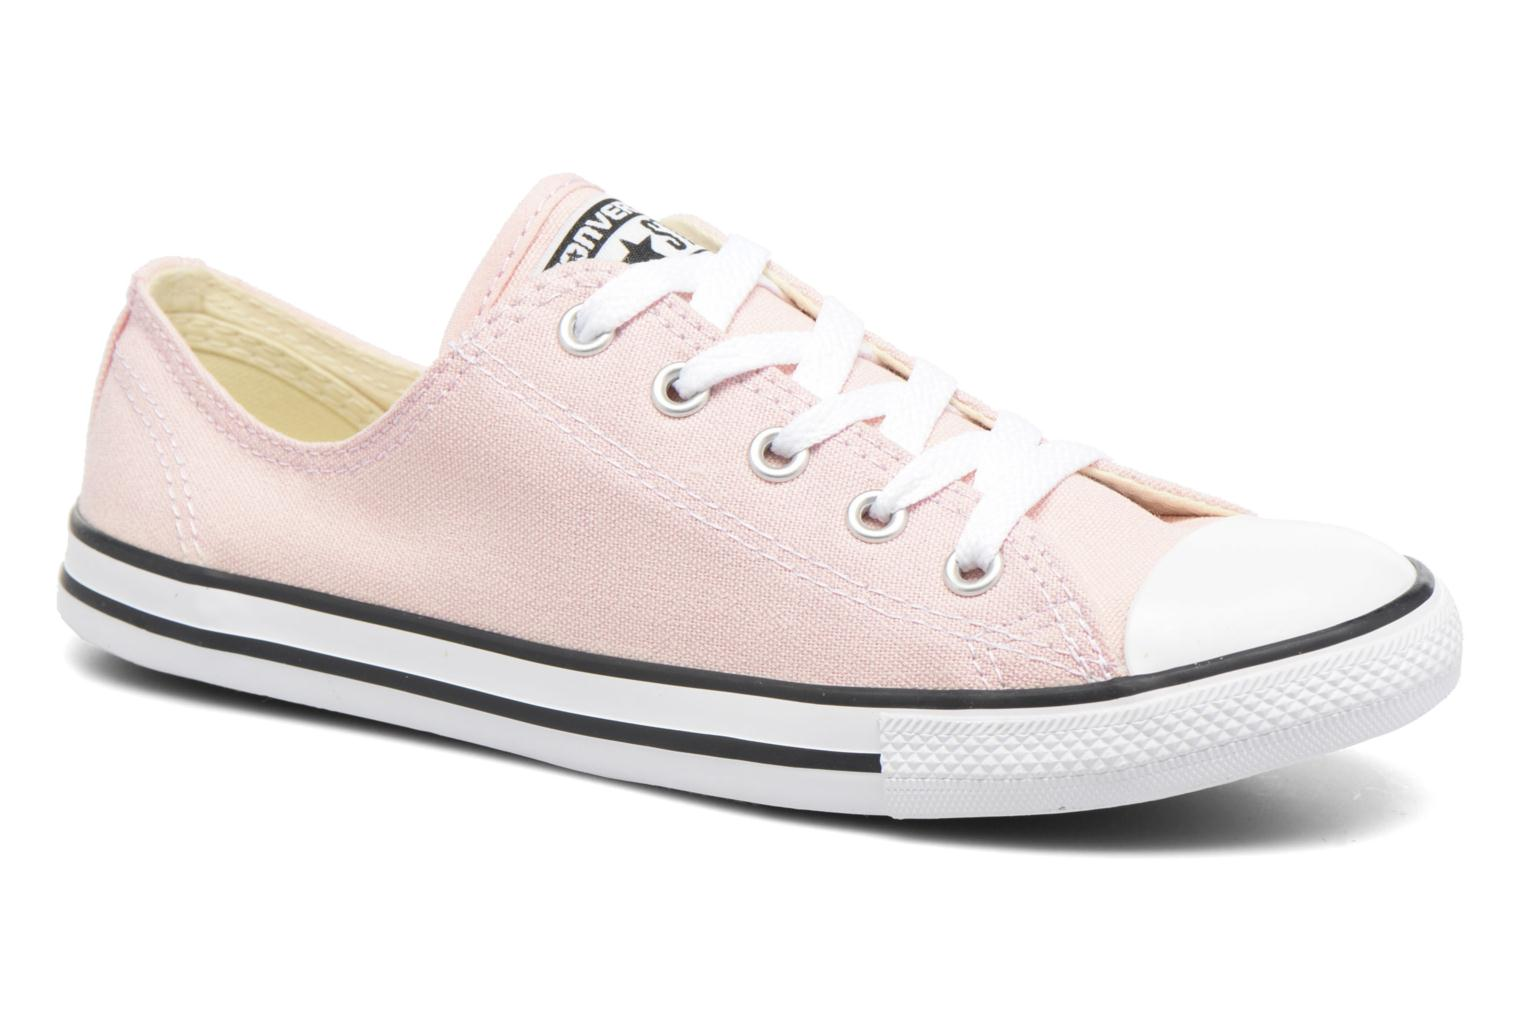 All Star Dainty Canvas Ox W Vapor Pink/Black/White